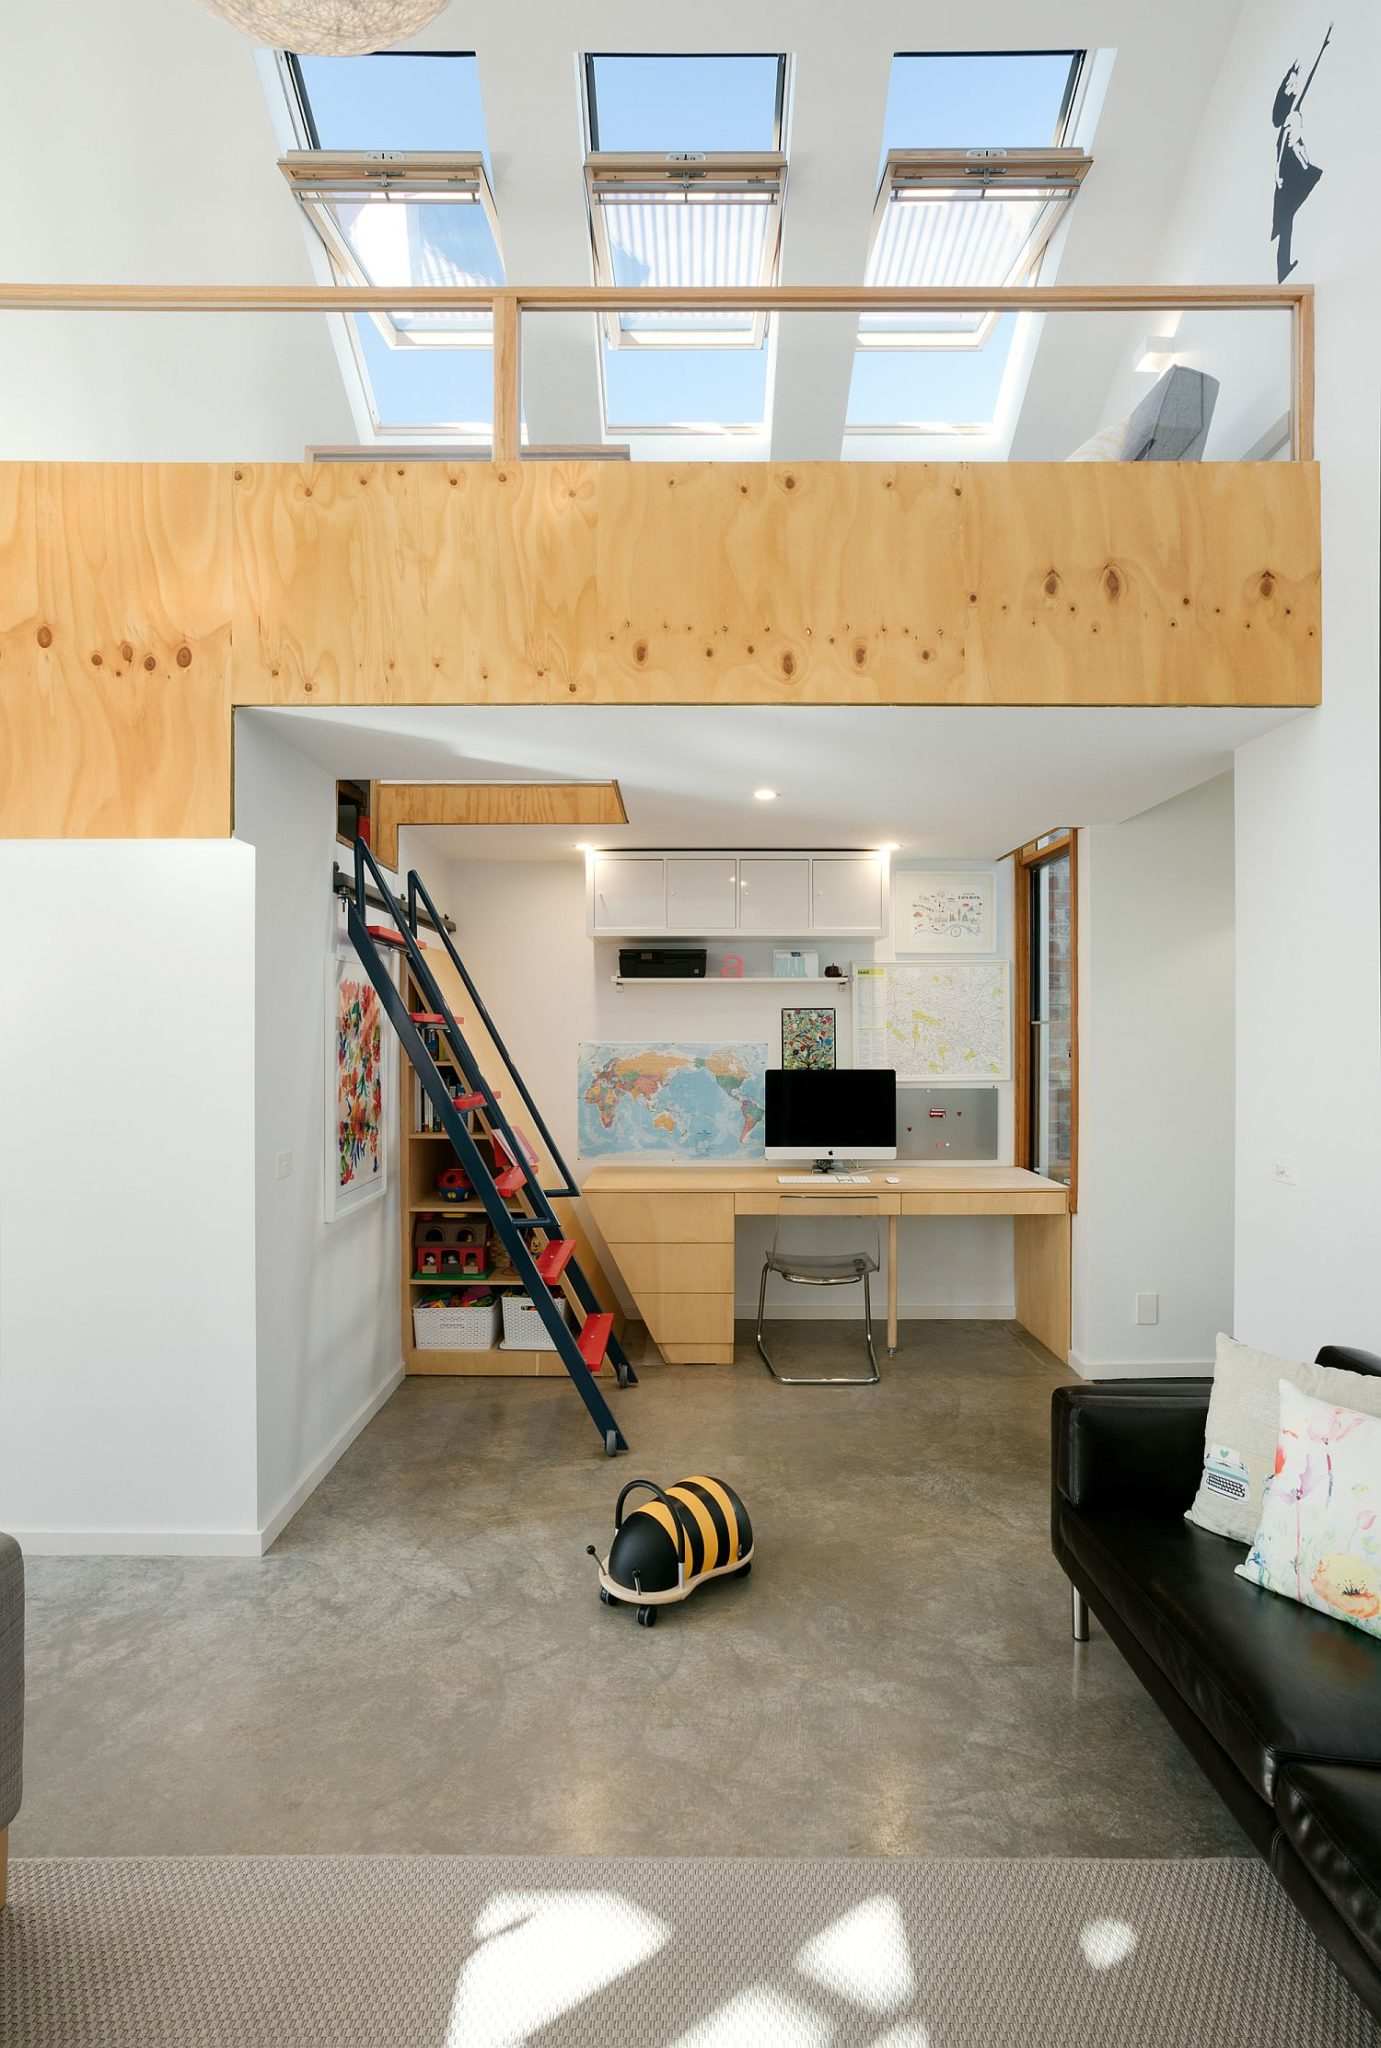 Home-work-space-under-the-mezzanine-level-with-a-simple-stairway